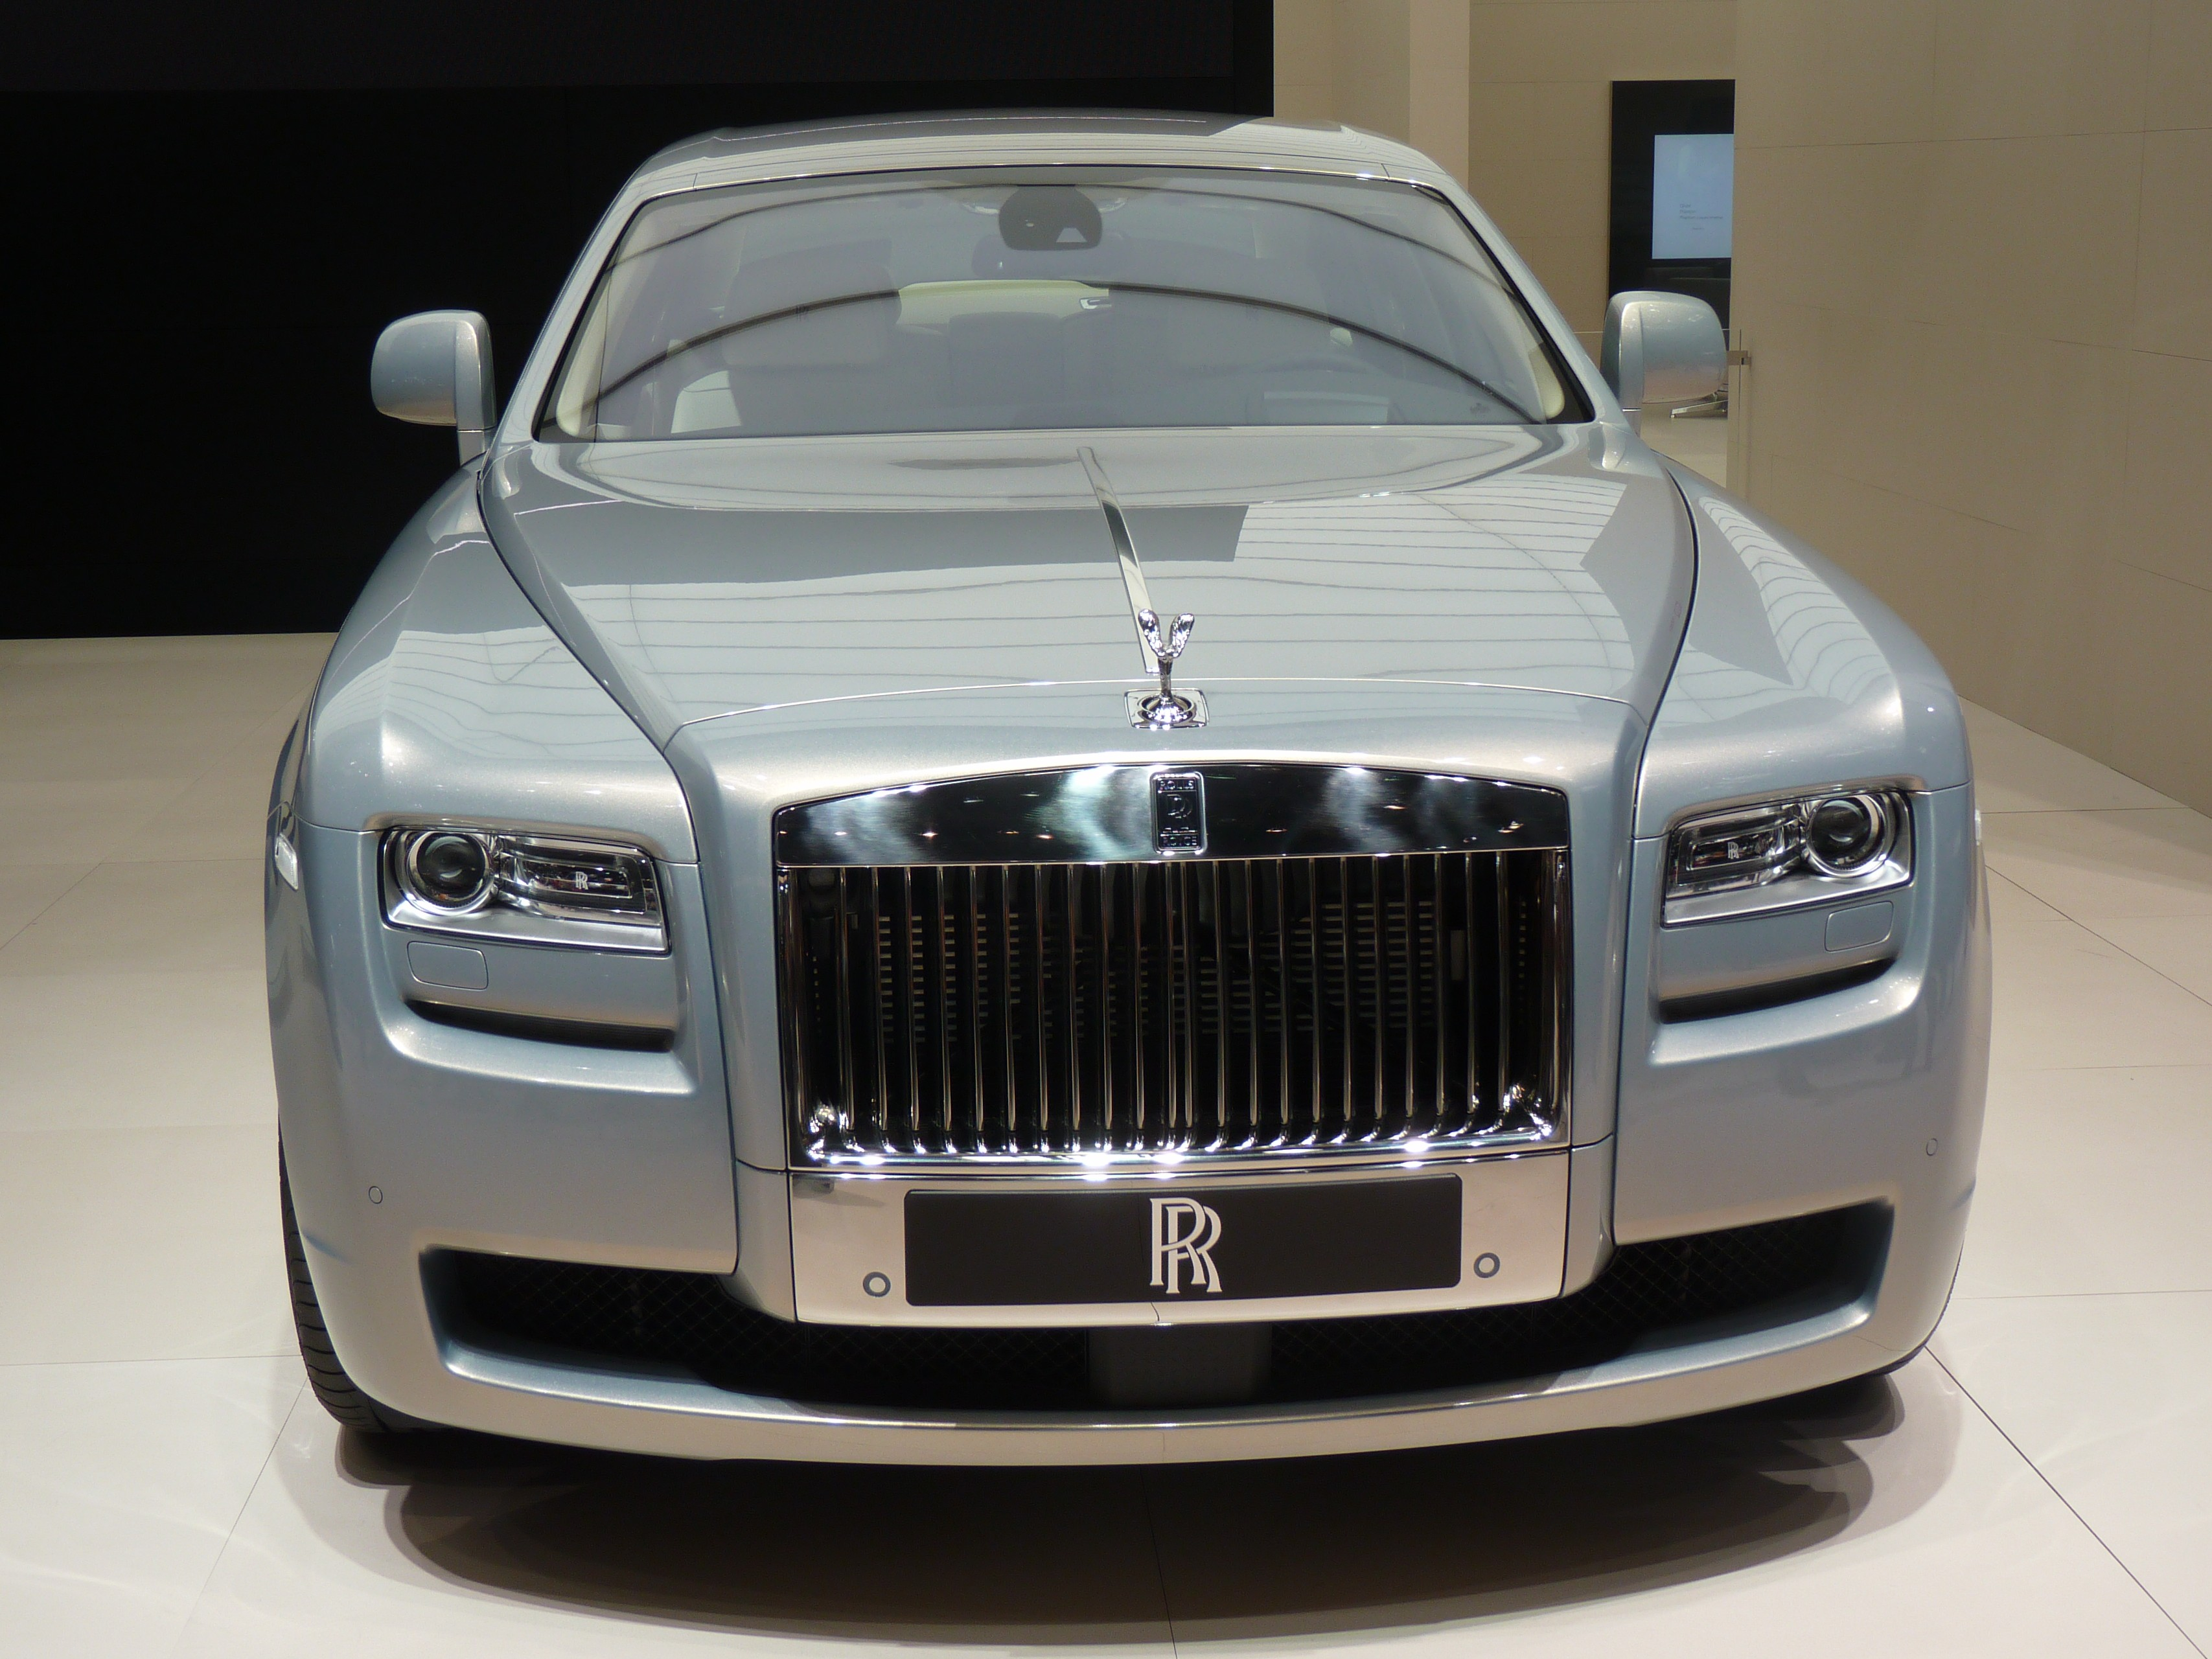 rolls-royce images